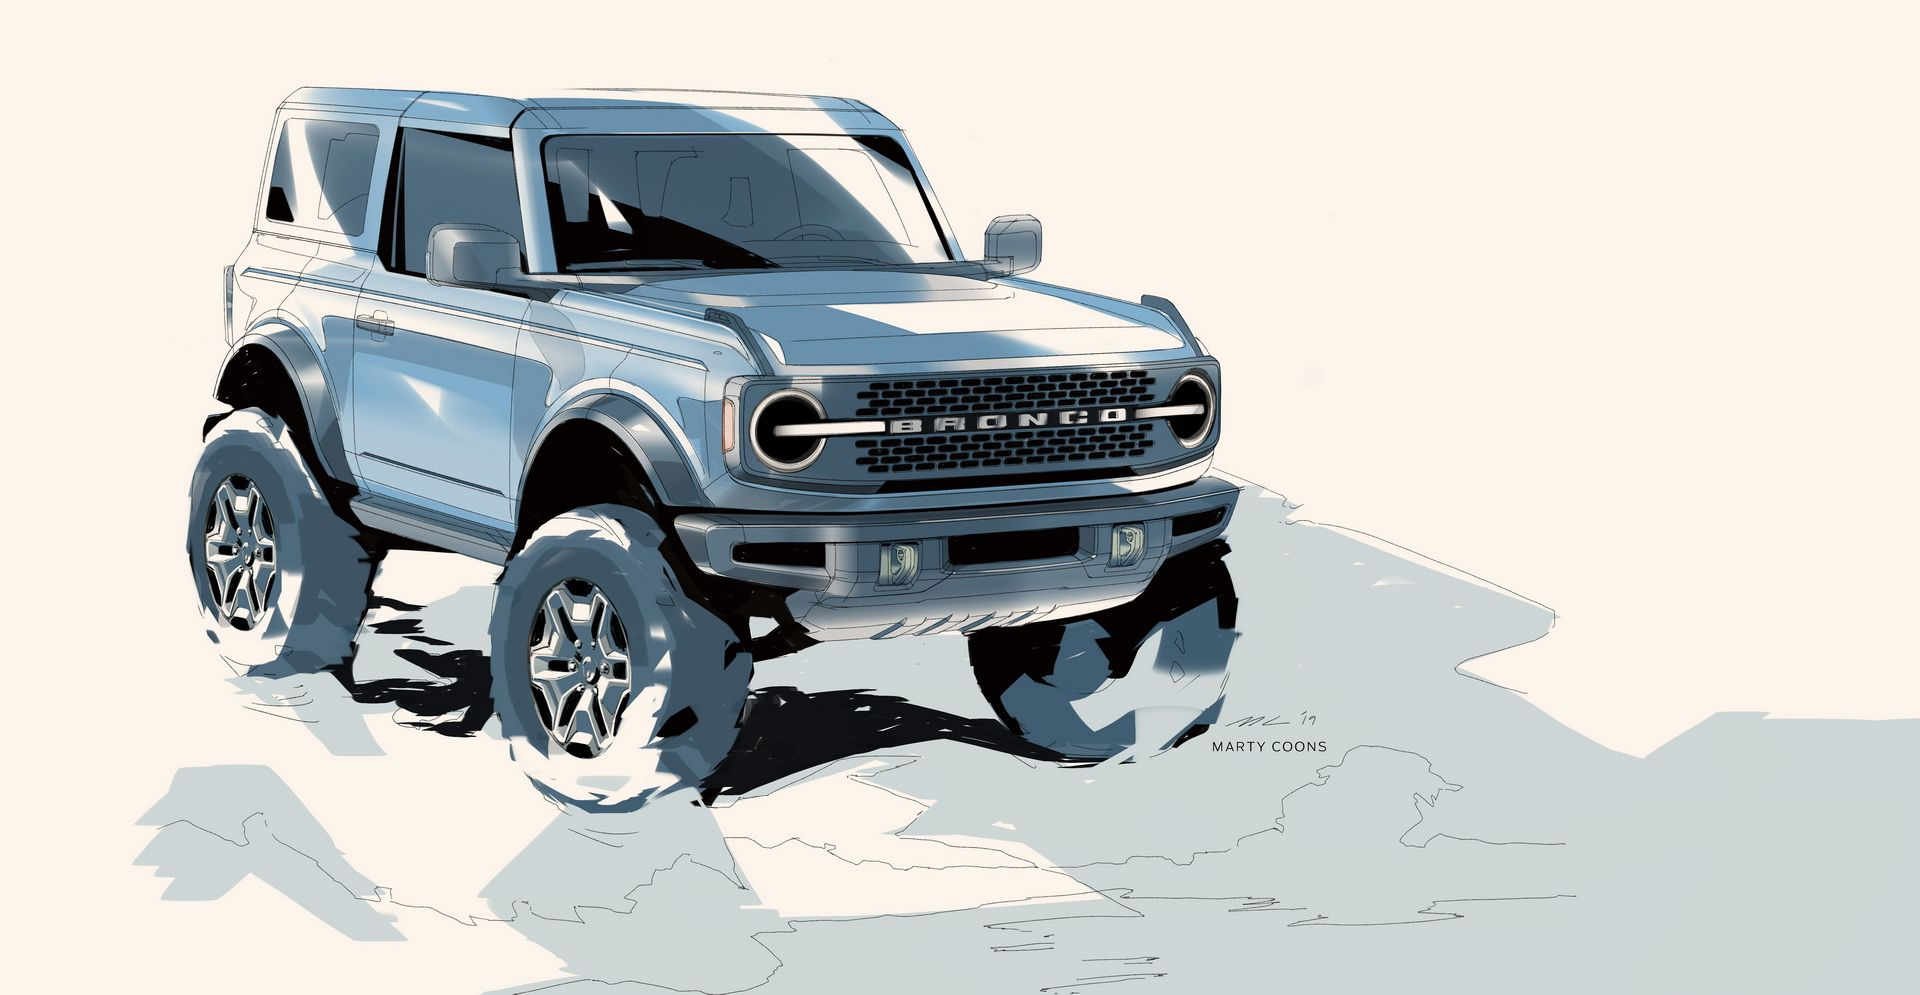 2021 Ford Bronco The OffRoad Icon Returns To Blow The